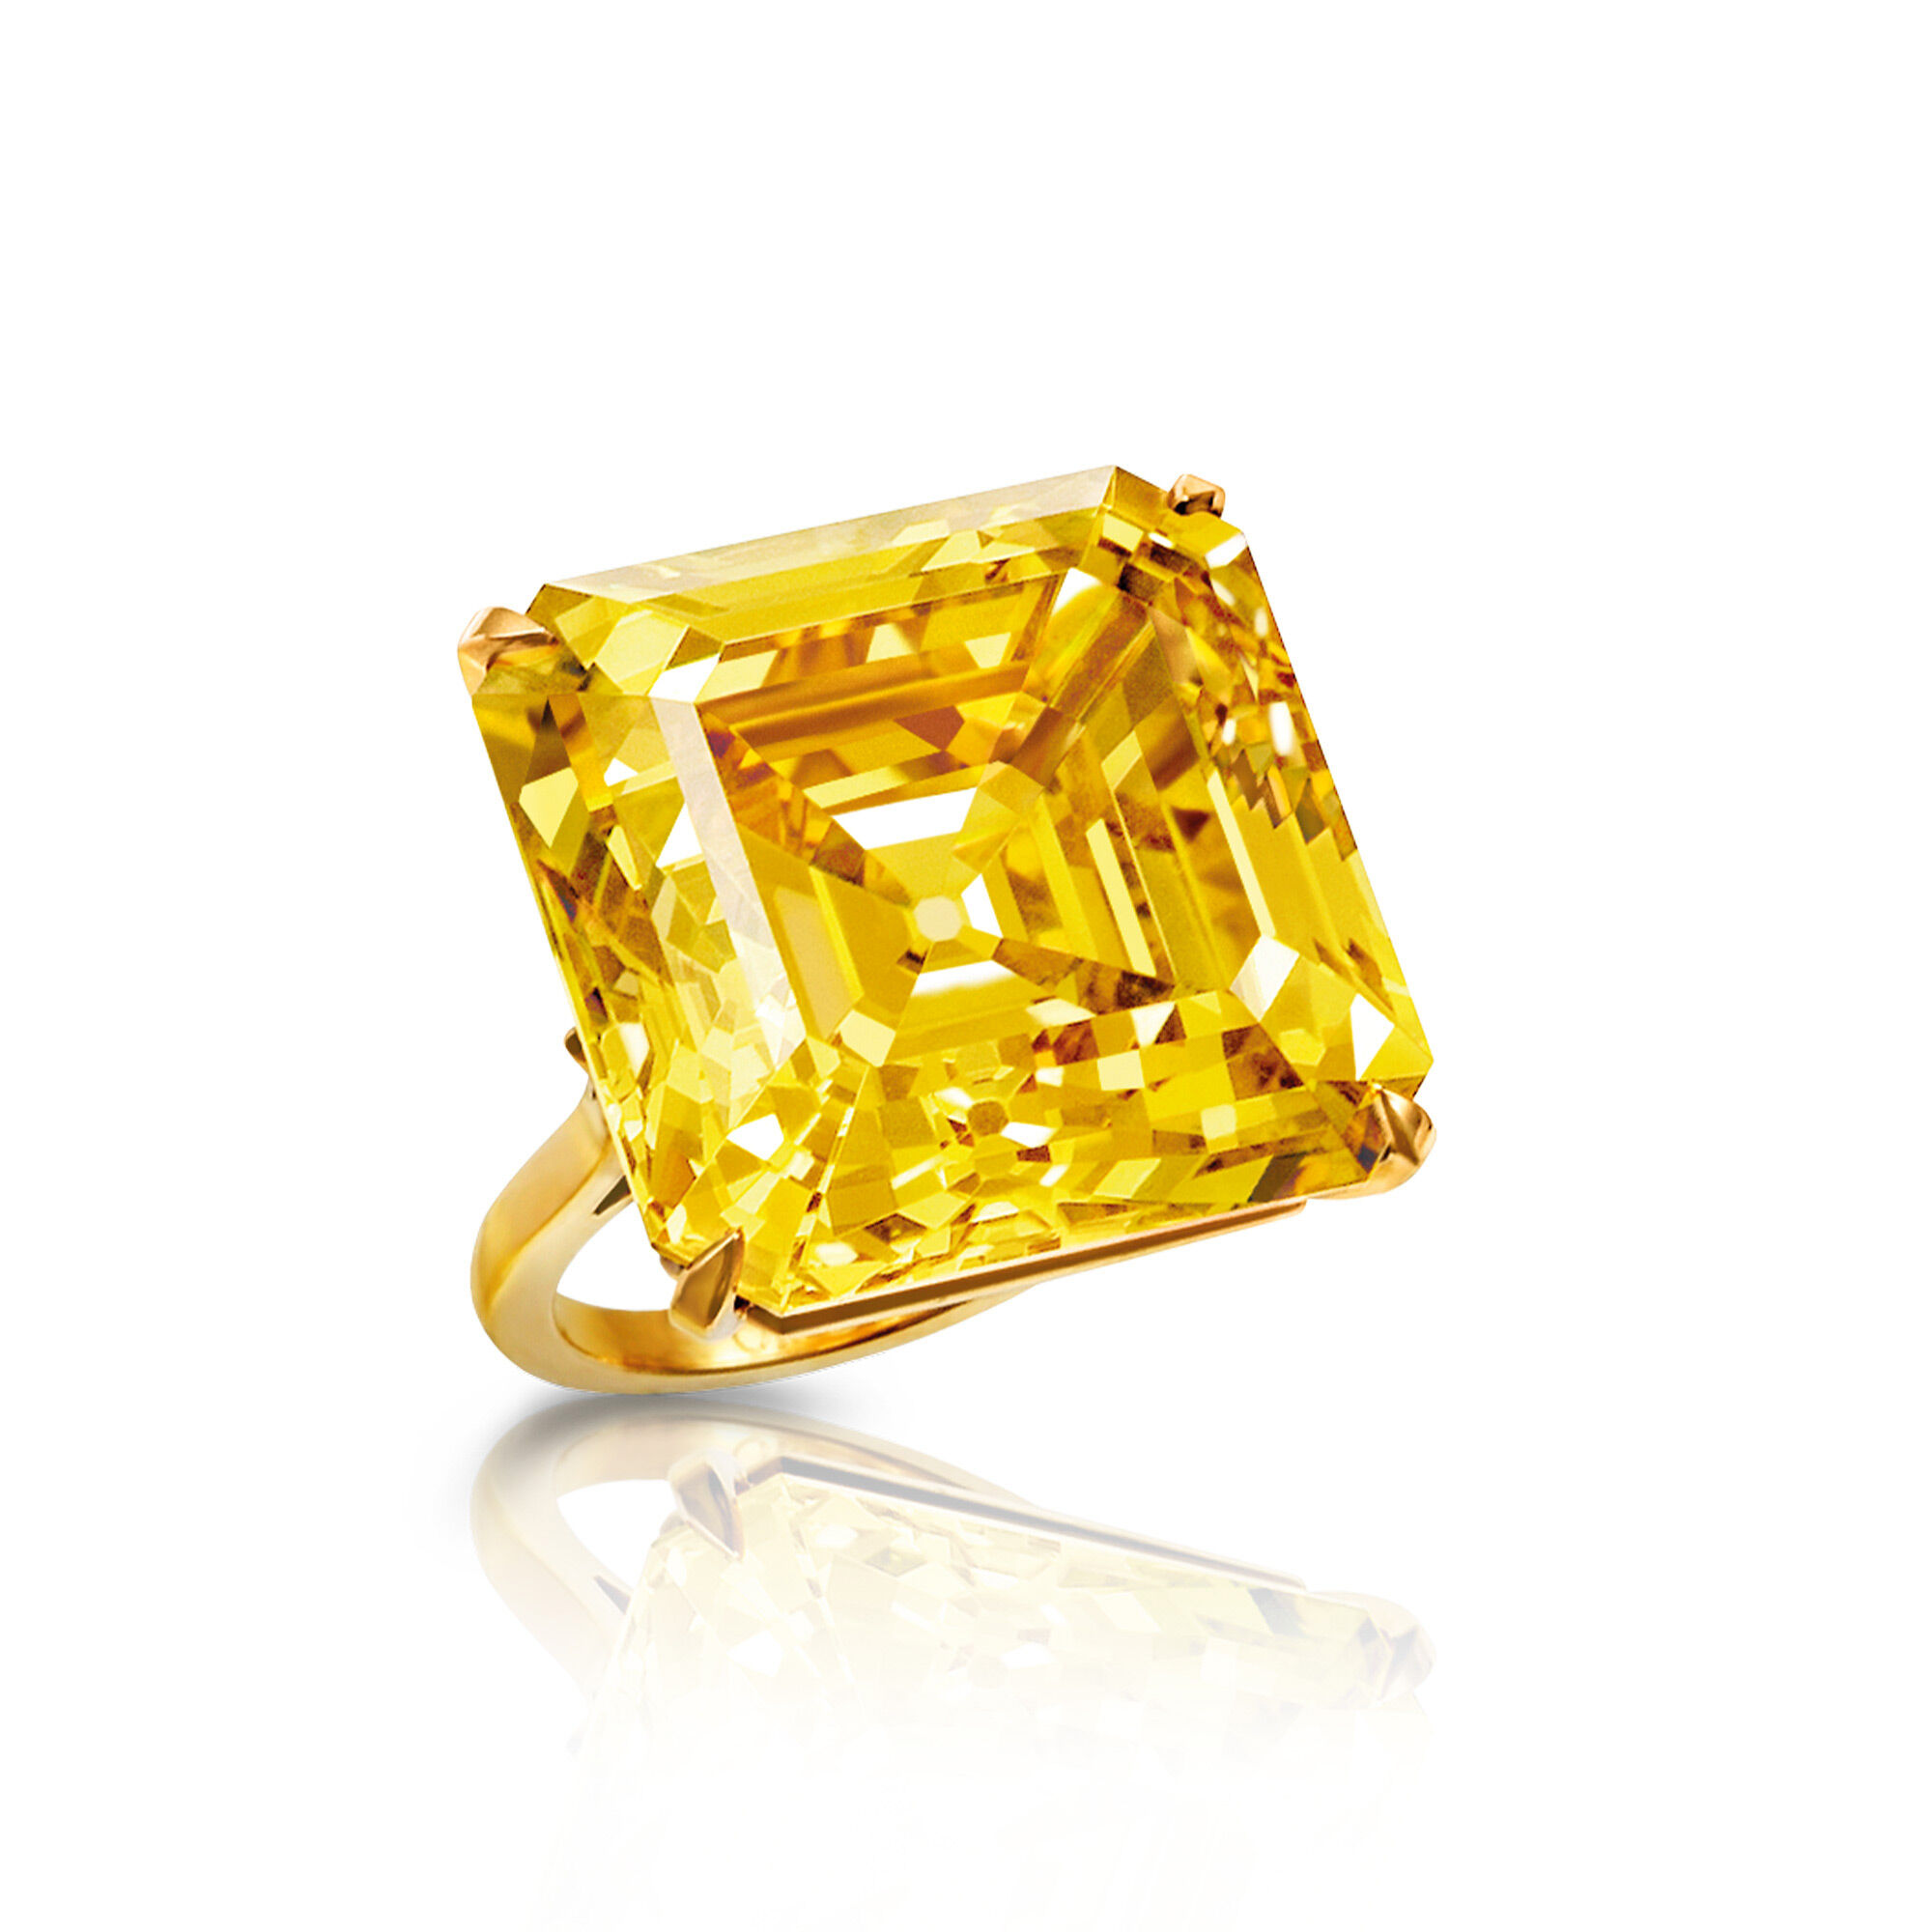 The 'Star Of Bombay' Famous Yellow Diamond from Graff